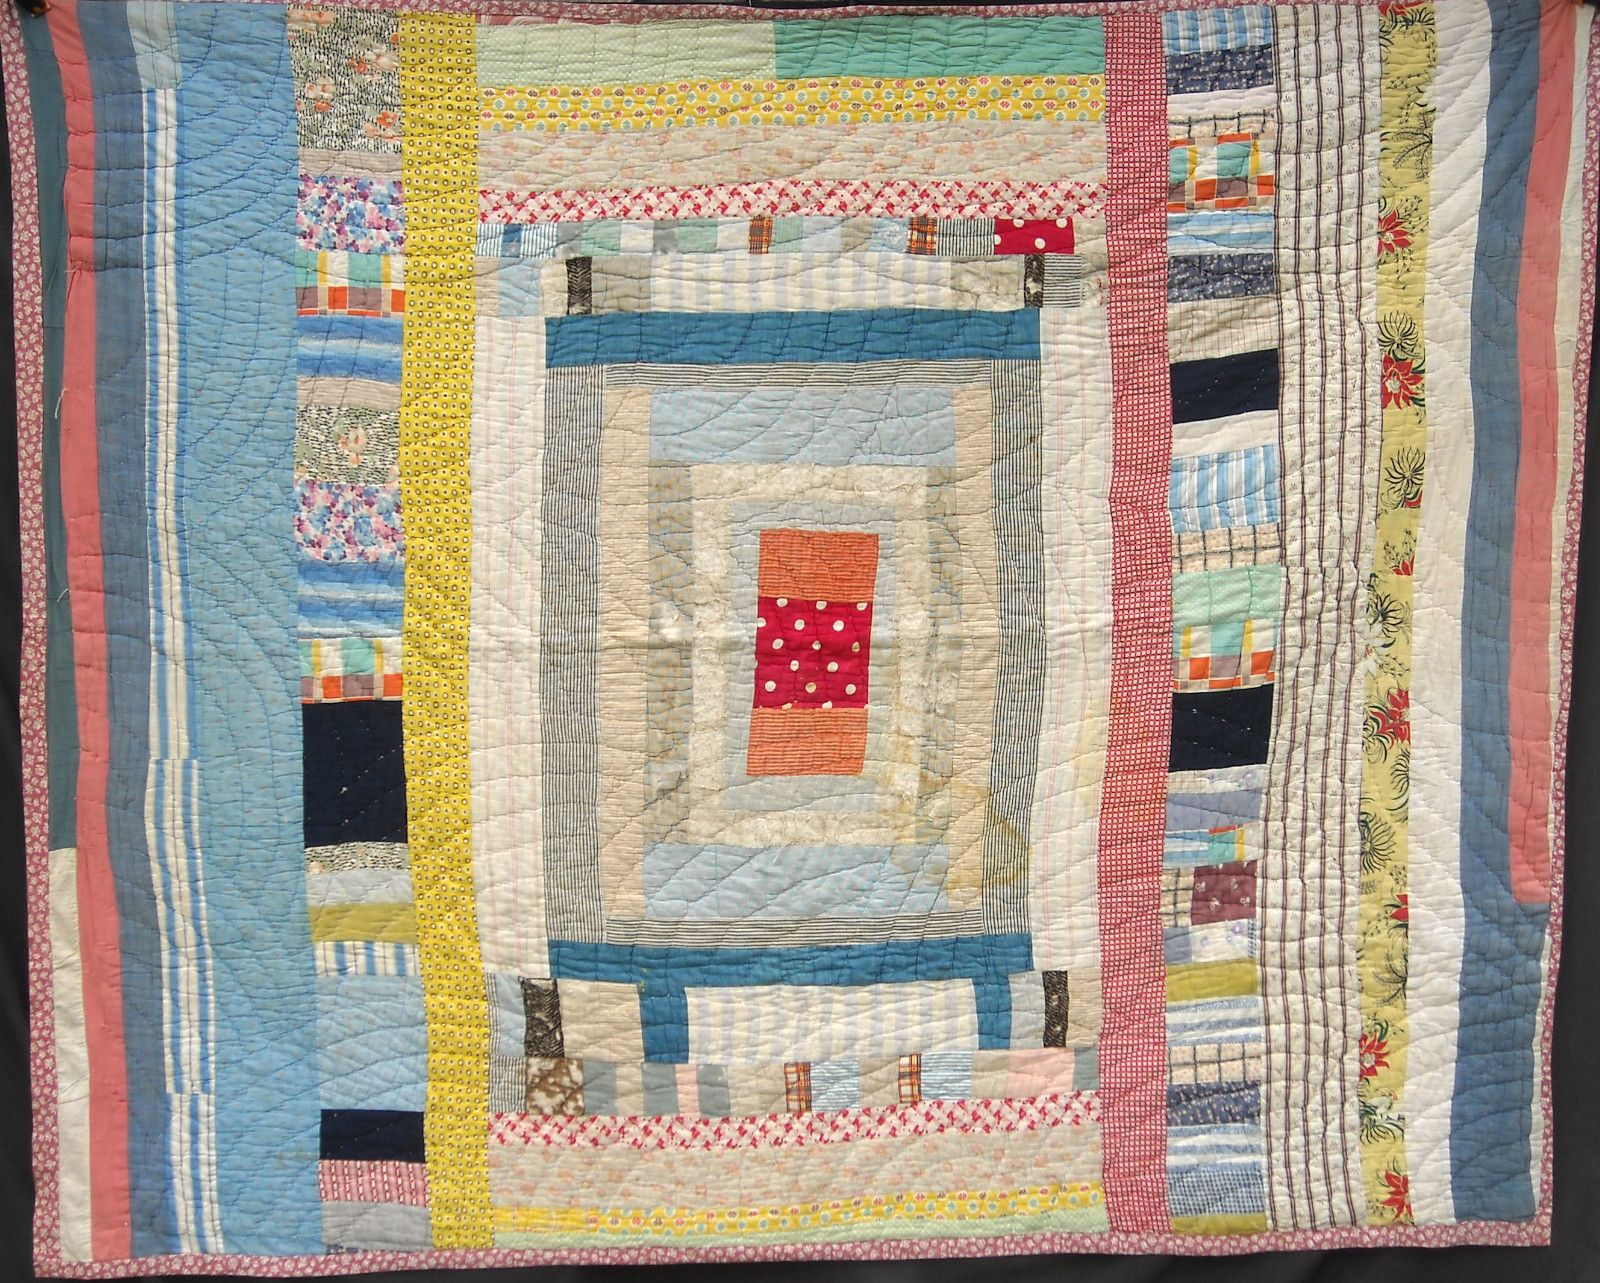 caged spirit in a barrel 1940s quilt texas possibly african american modernist fabrics. Black Bedroom Furniture Sets. Home Design Ideas